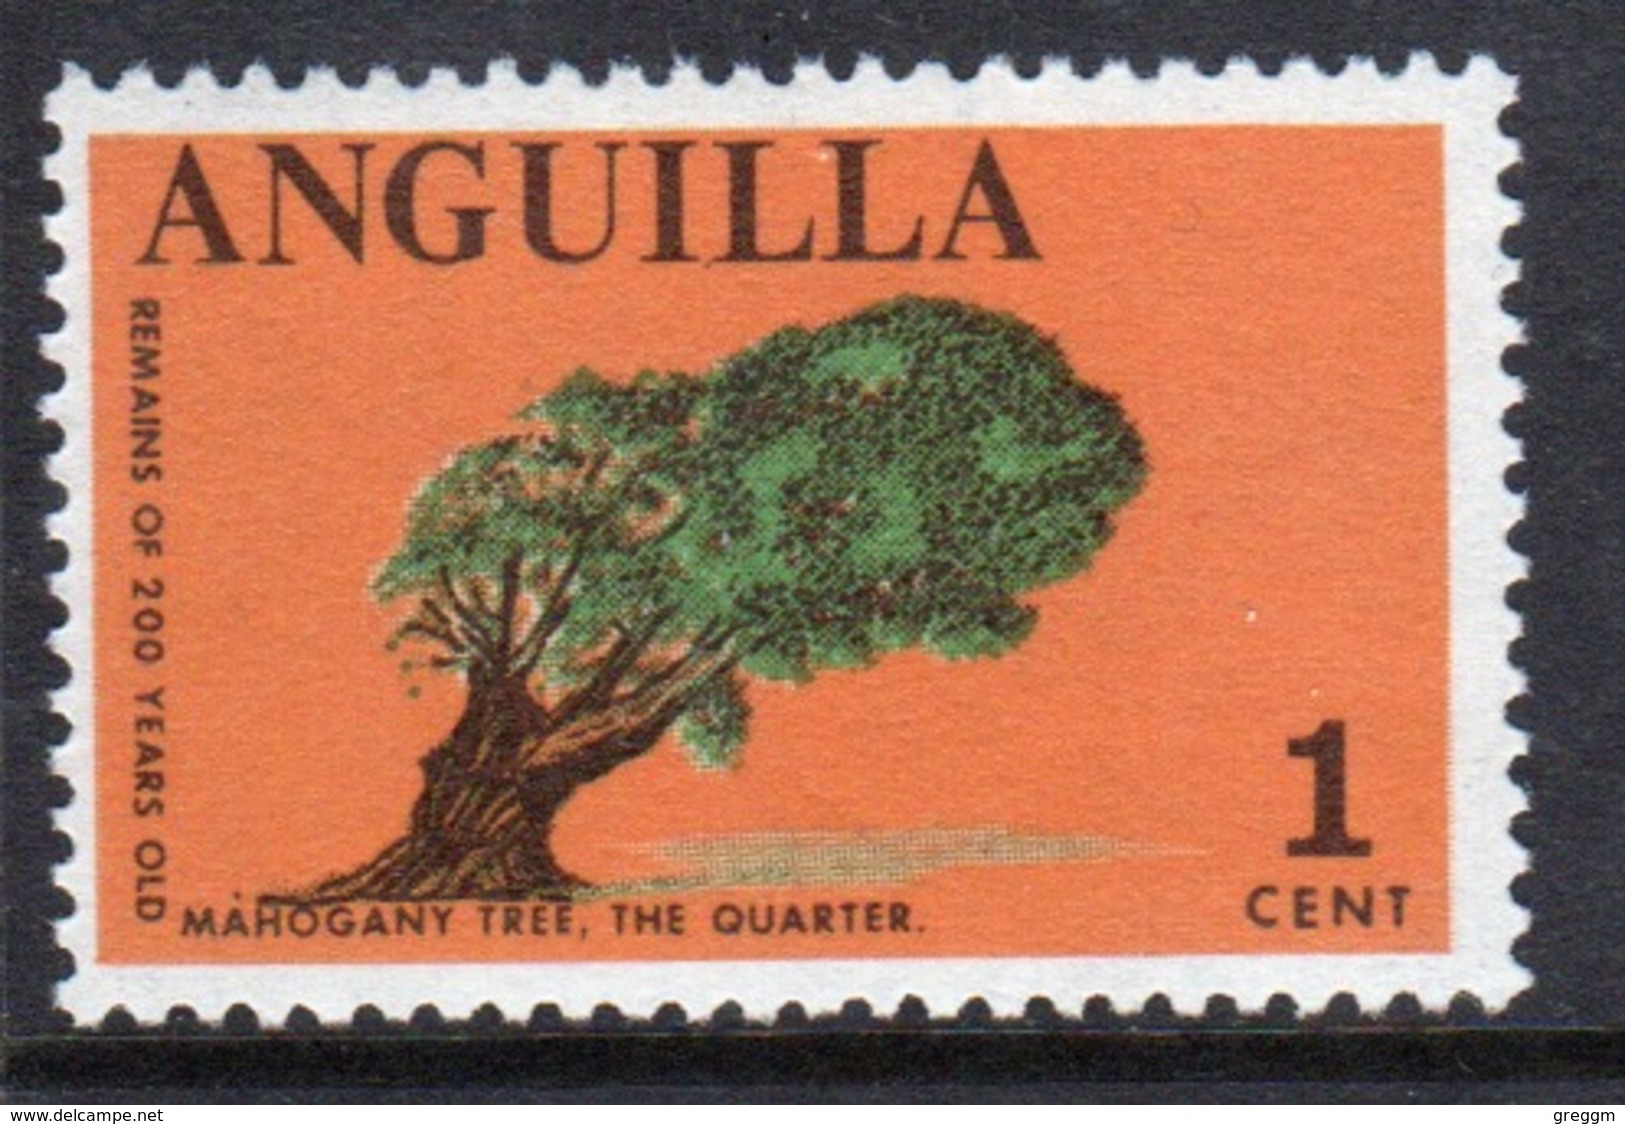 Anguilla Single 1 Cent Stamp From The 1967 Definitive Set. - Anguilla (1968-...)